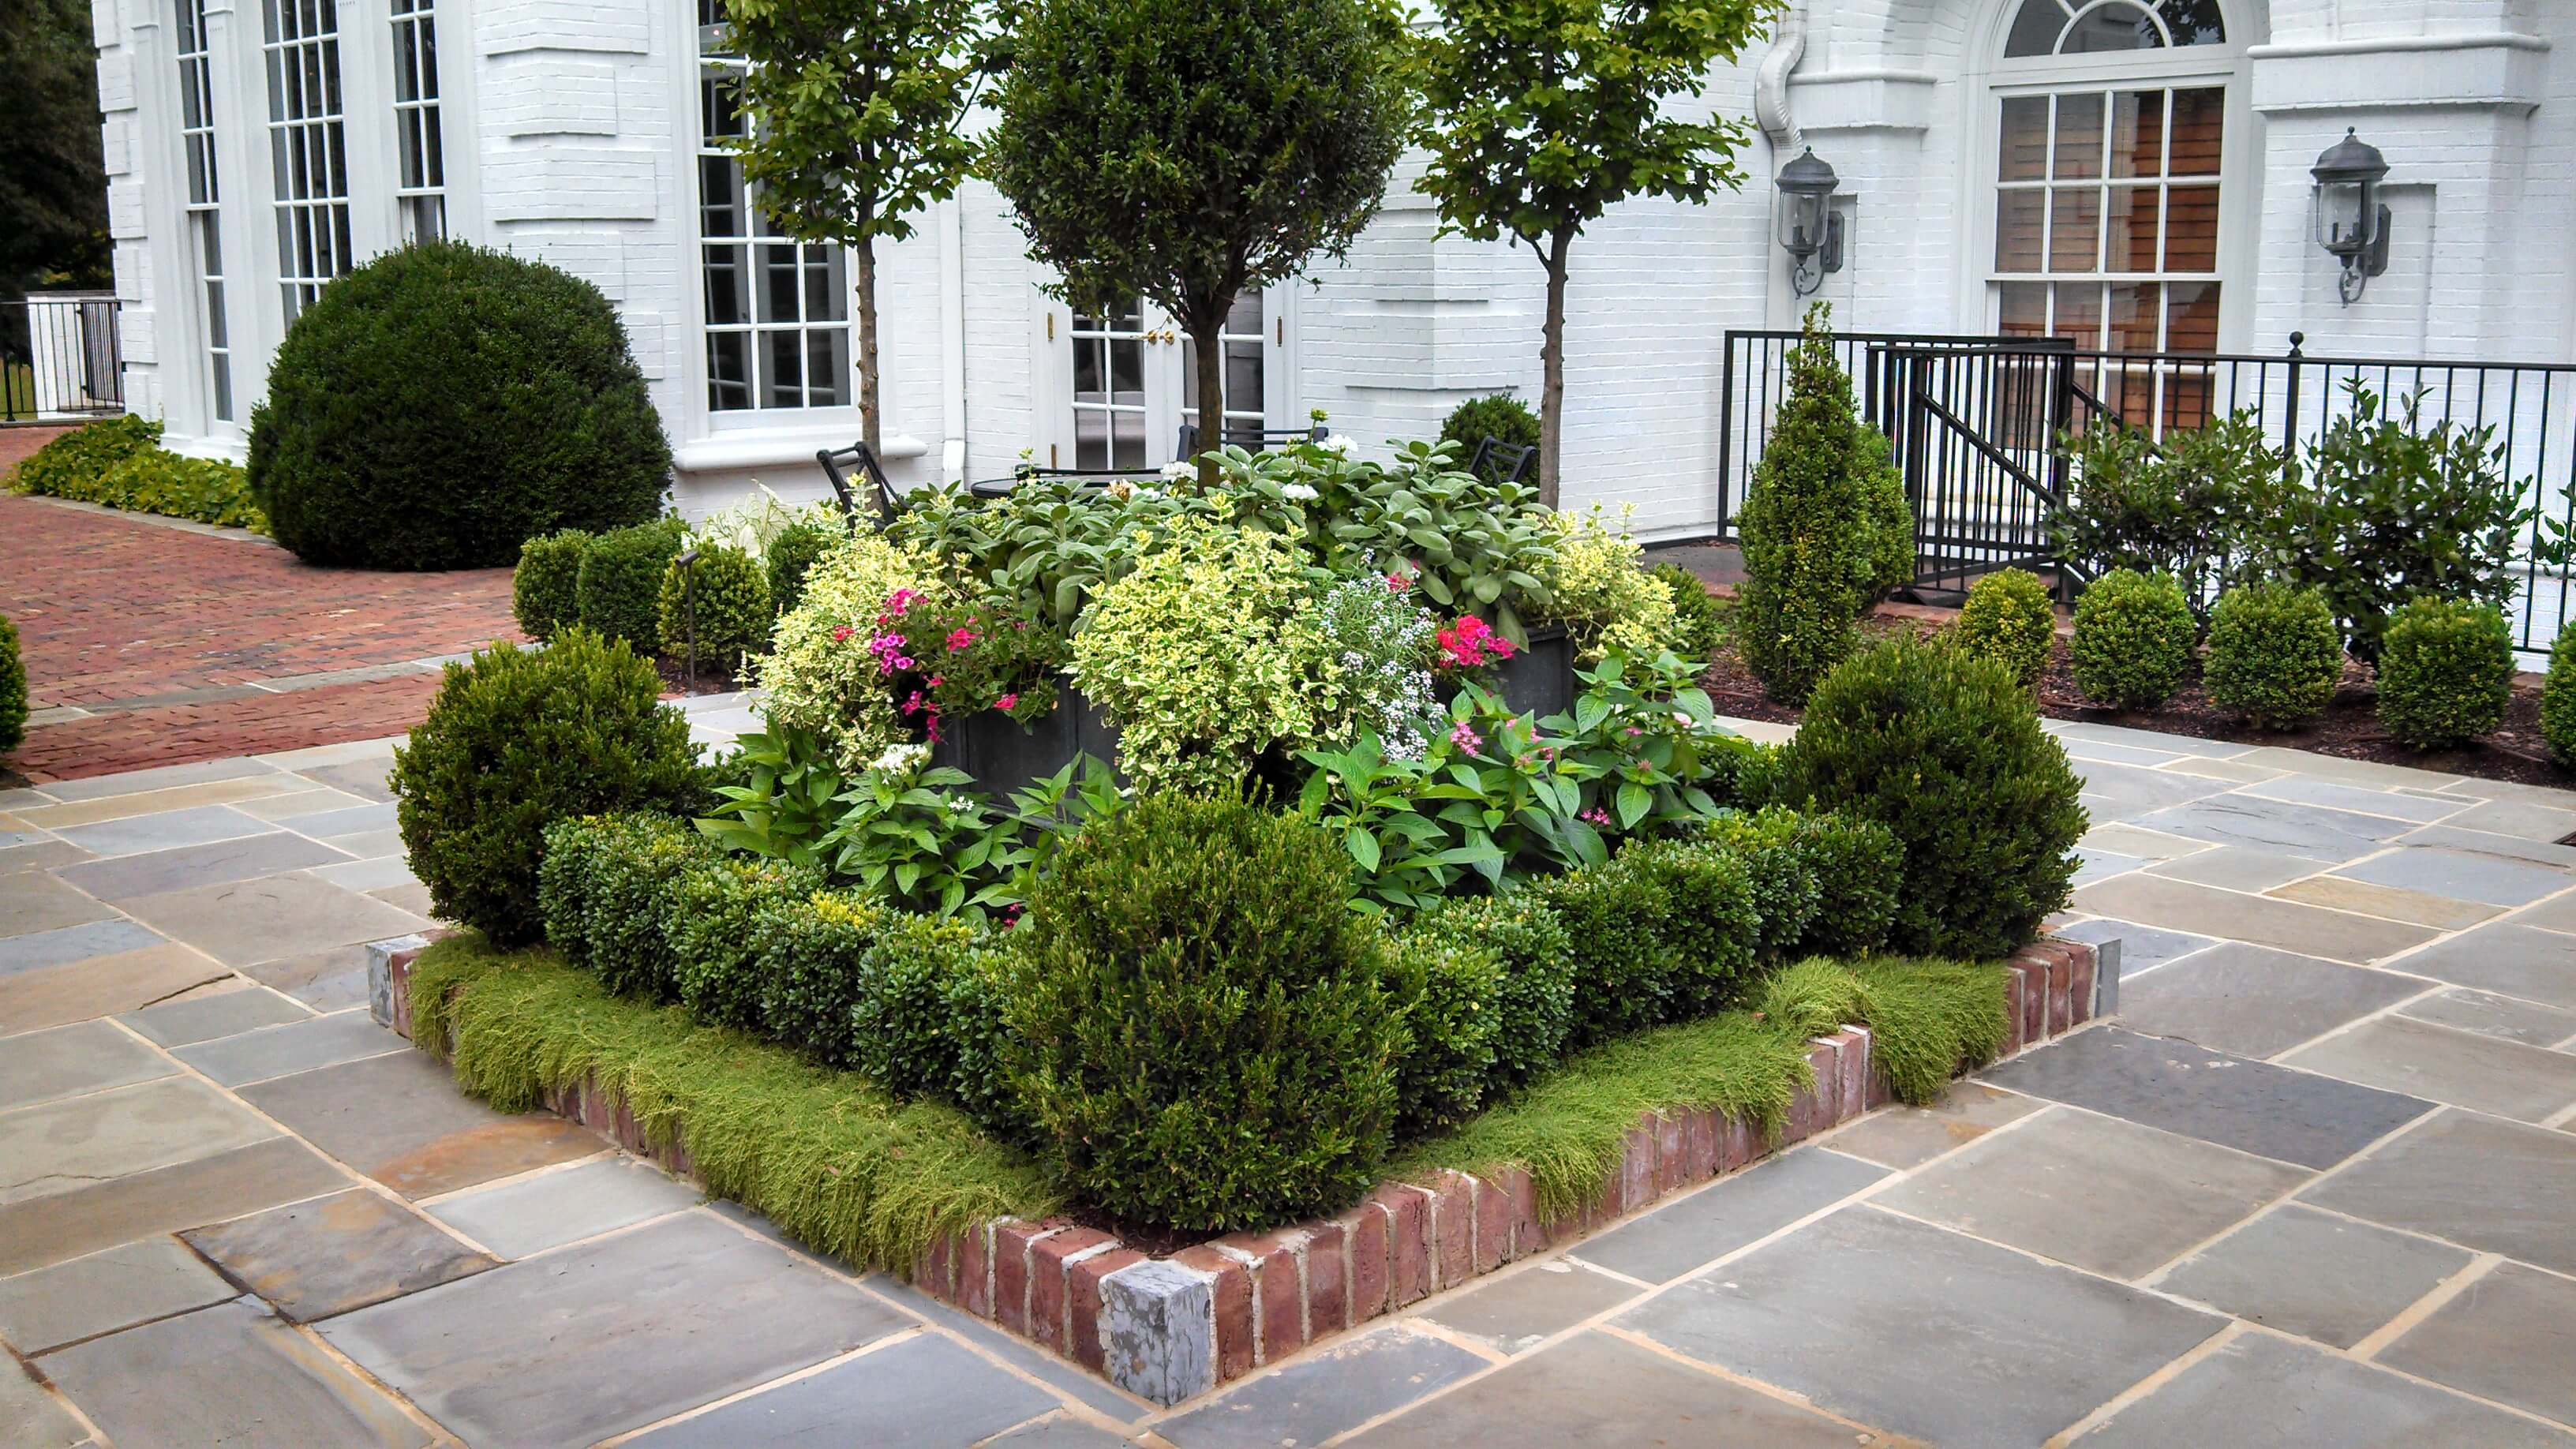 50 best front yard landscaping ideas and garden designs for Front yard flower bed ideas